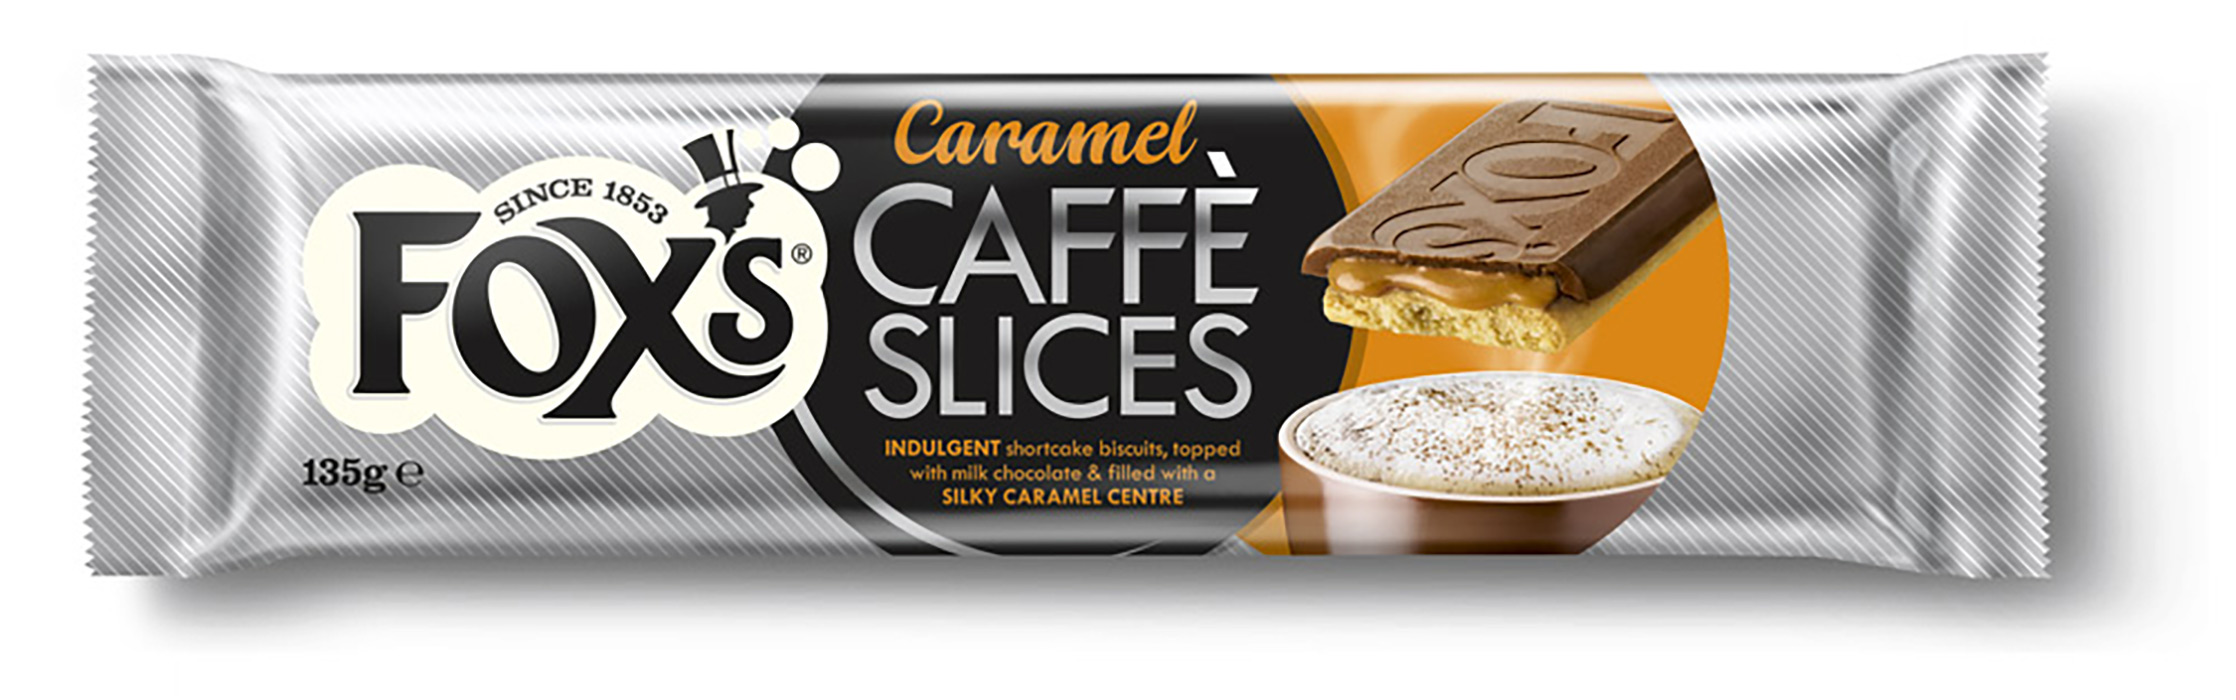 fox_caramel_slices_by_London_food_photographer_michael_michaels